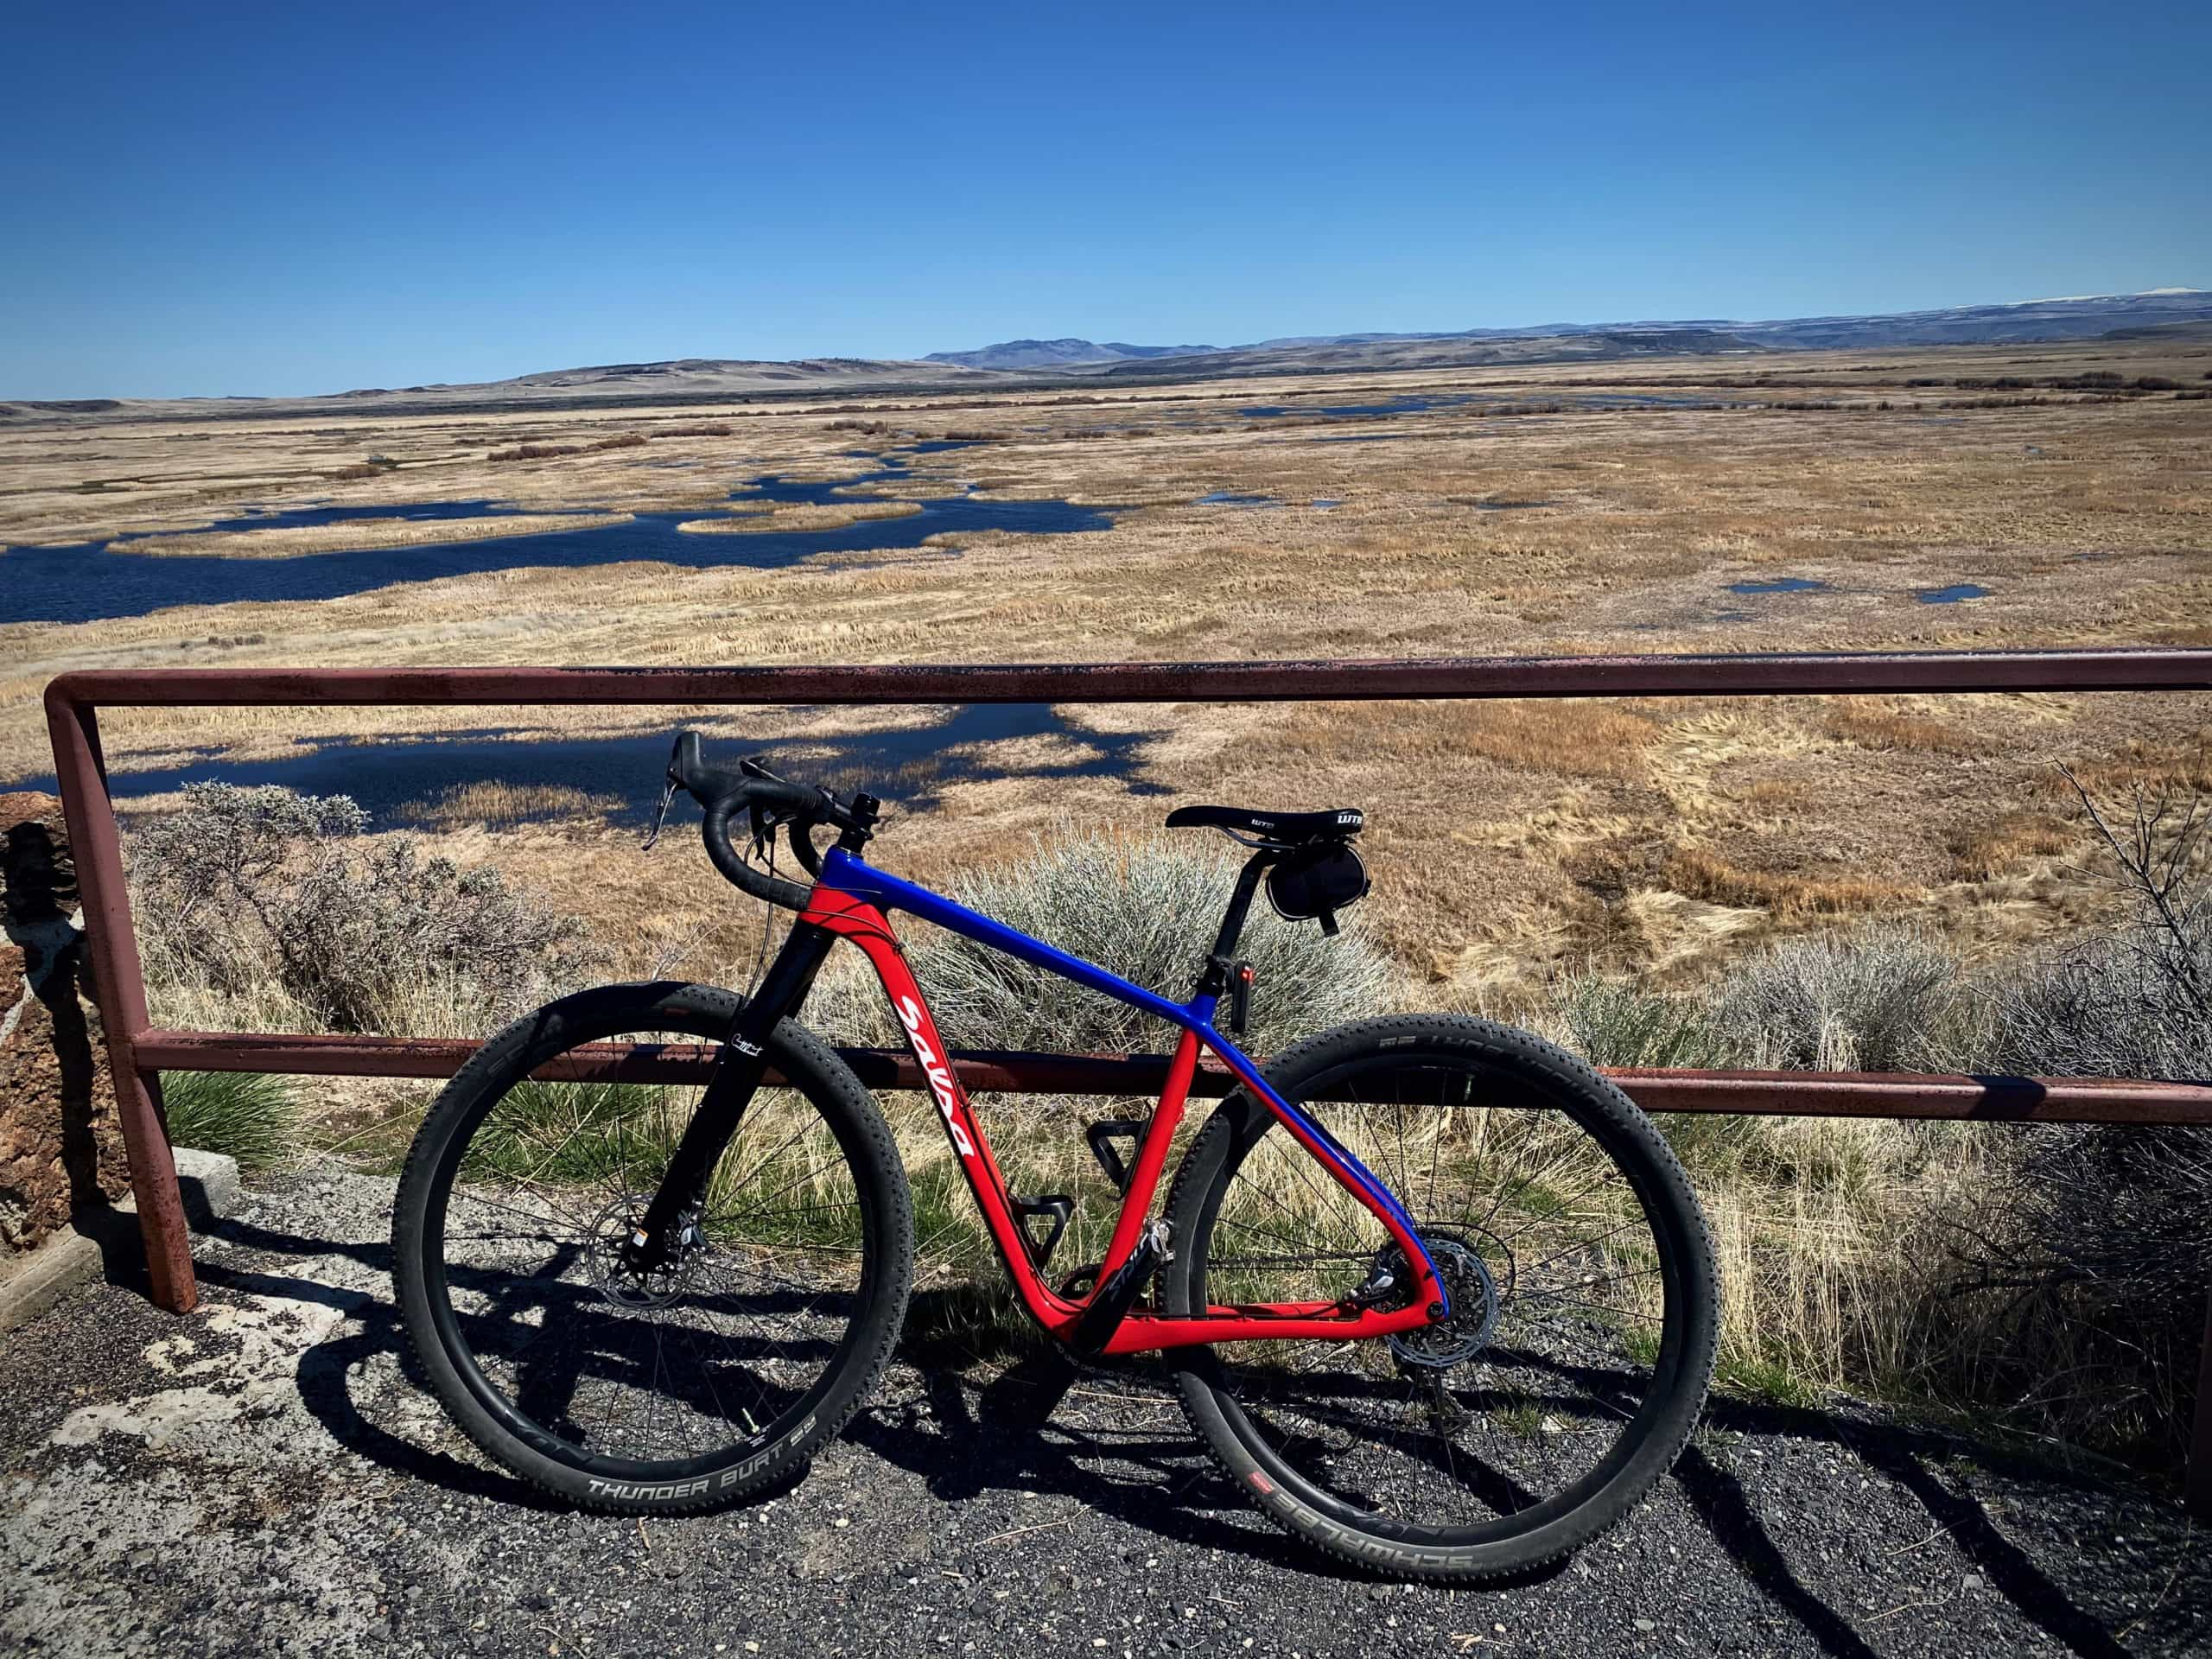 Bike with wetlands in background. Picture taken from Buena Vista butte near Burns, OR.